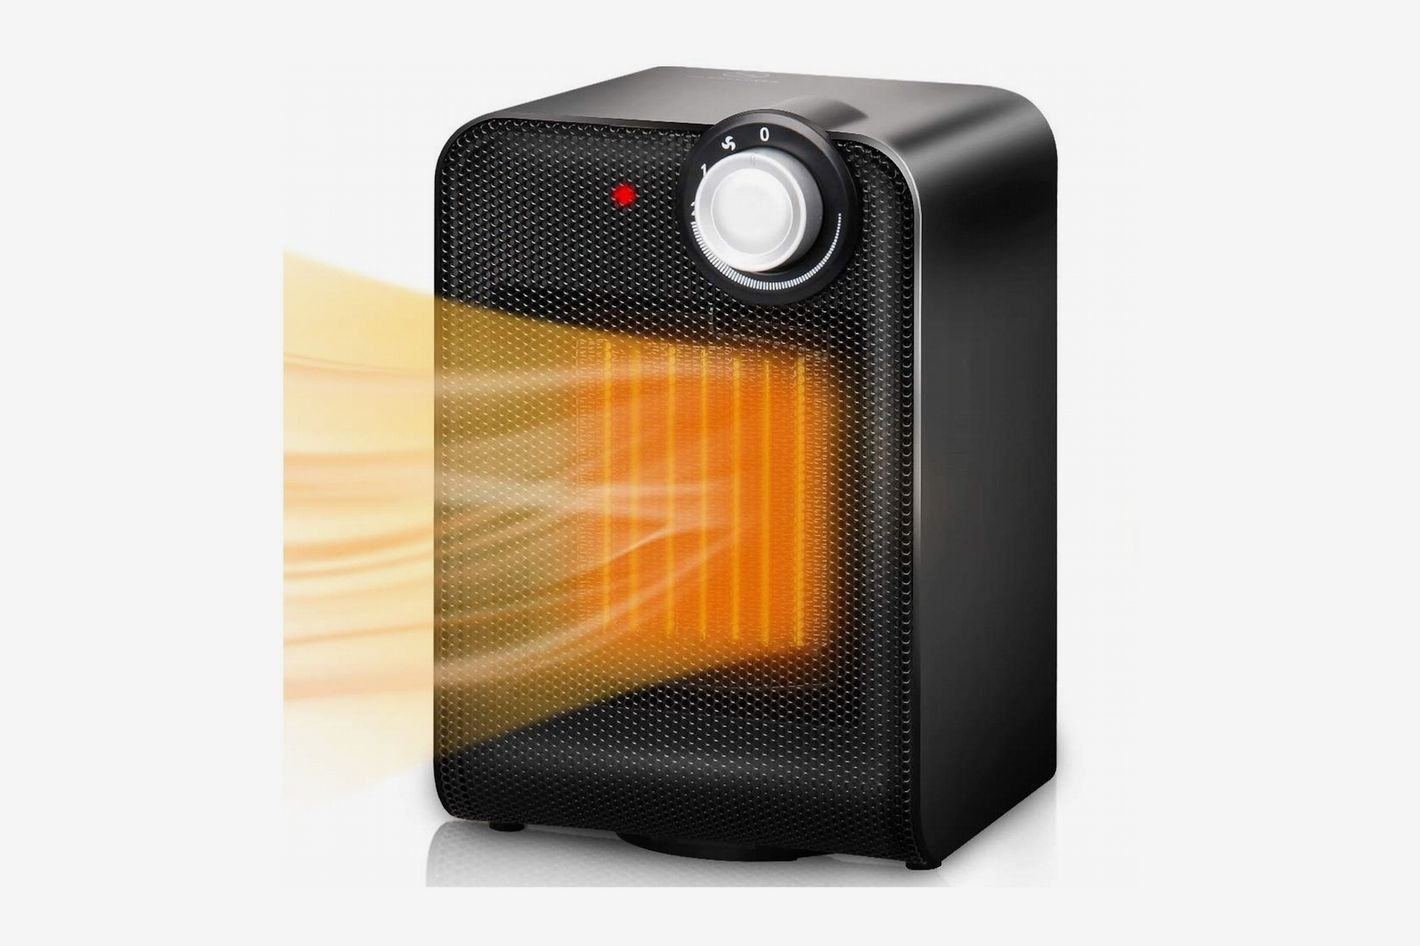 17 Best Space Heaters And Electric Heaters On Amazon